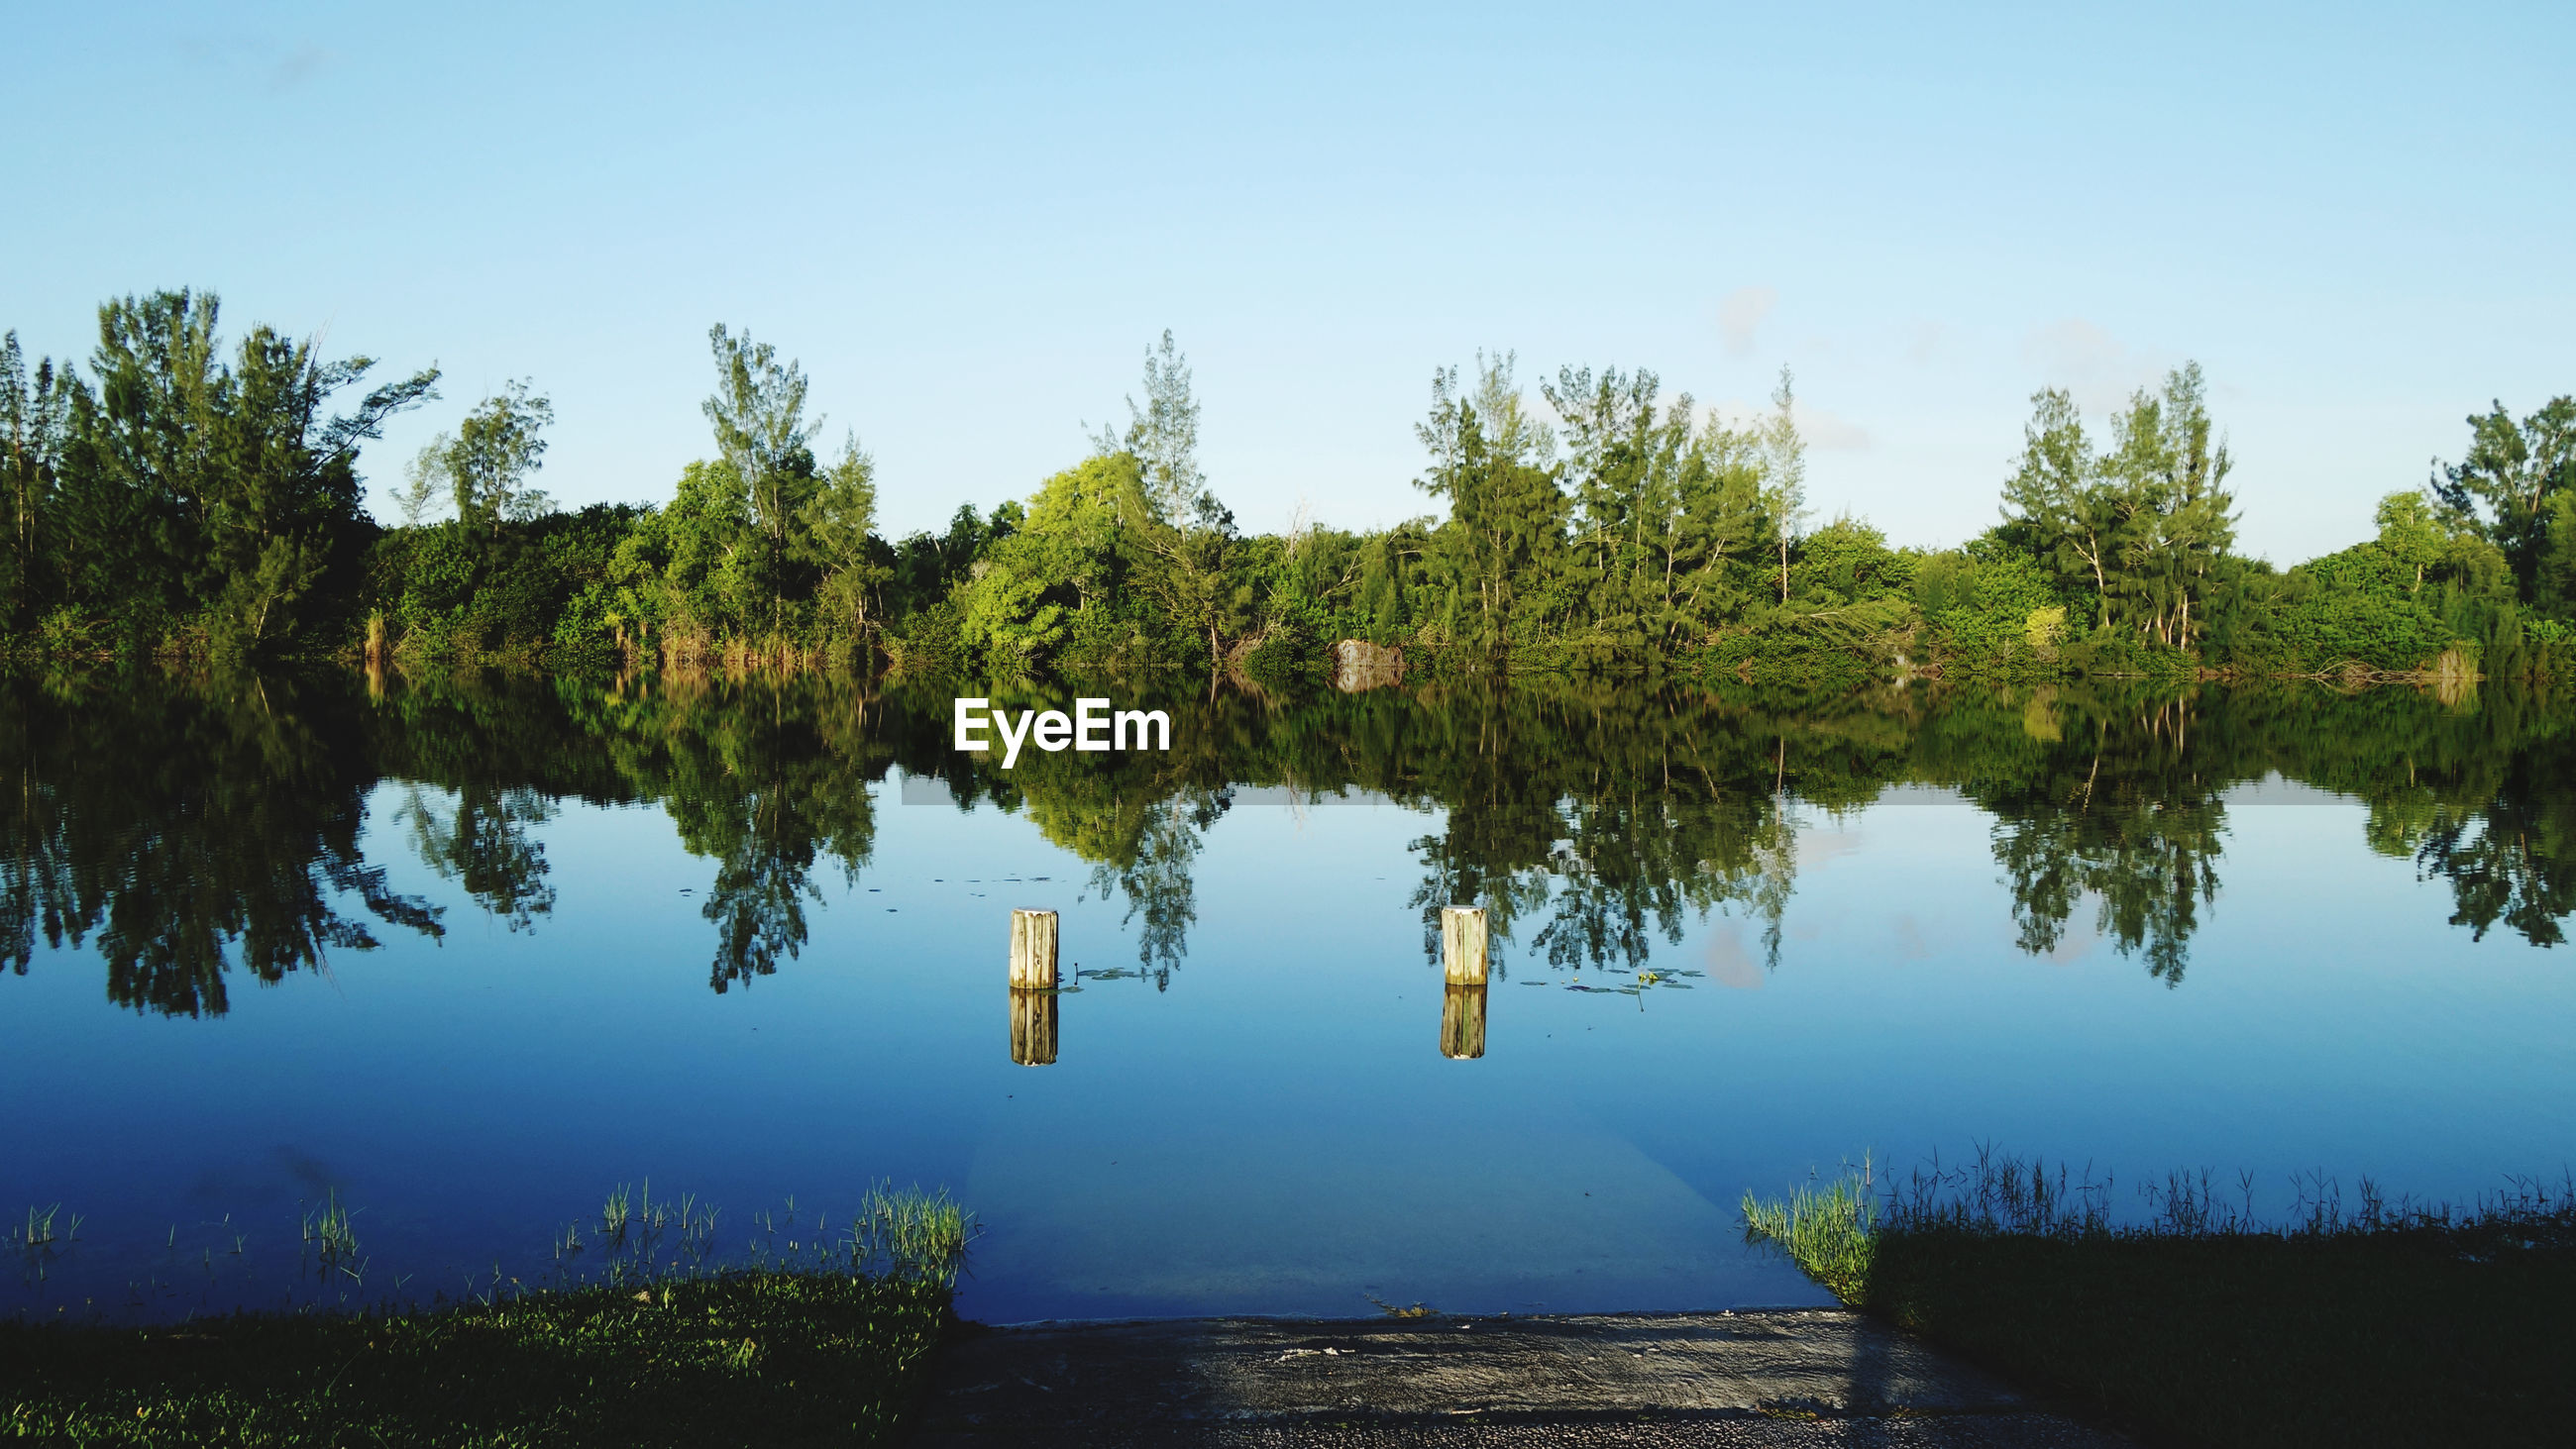 Panoramic view of trees on lake against sky